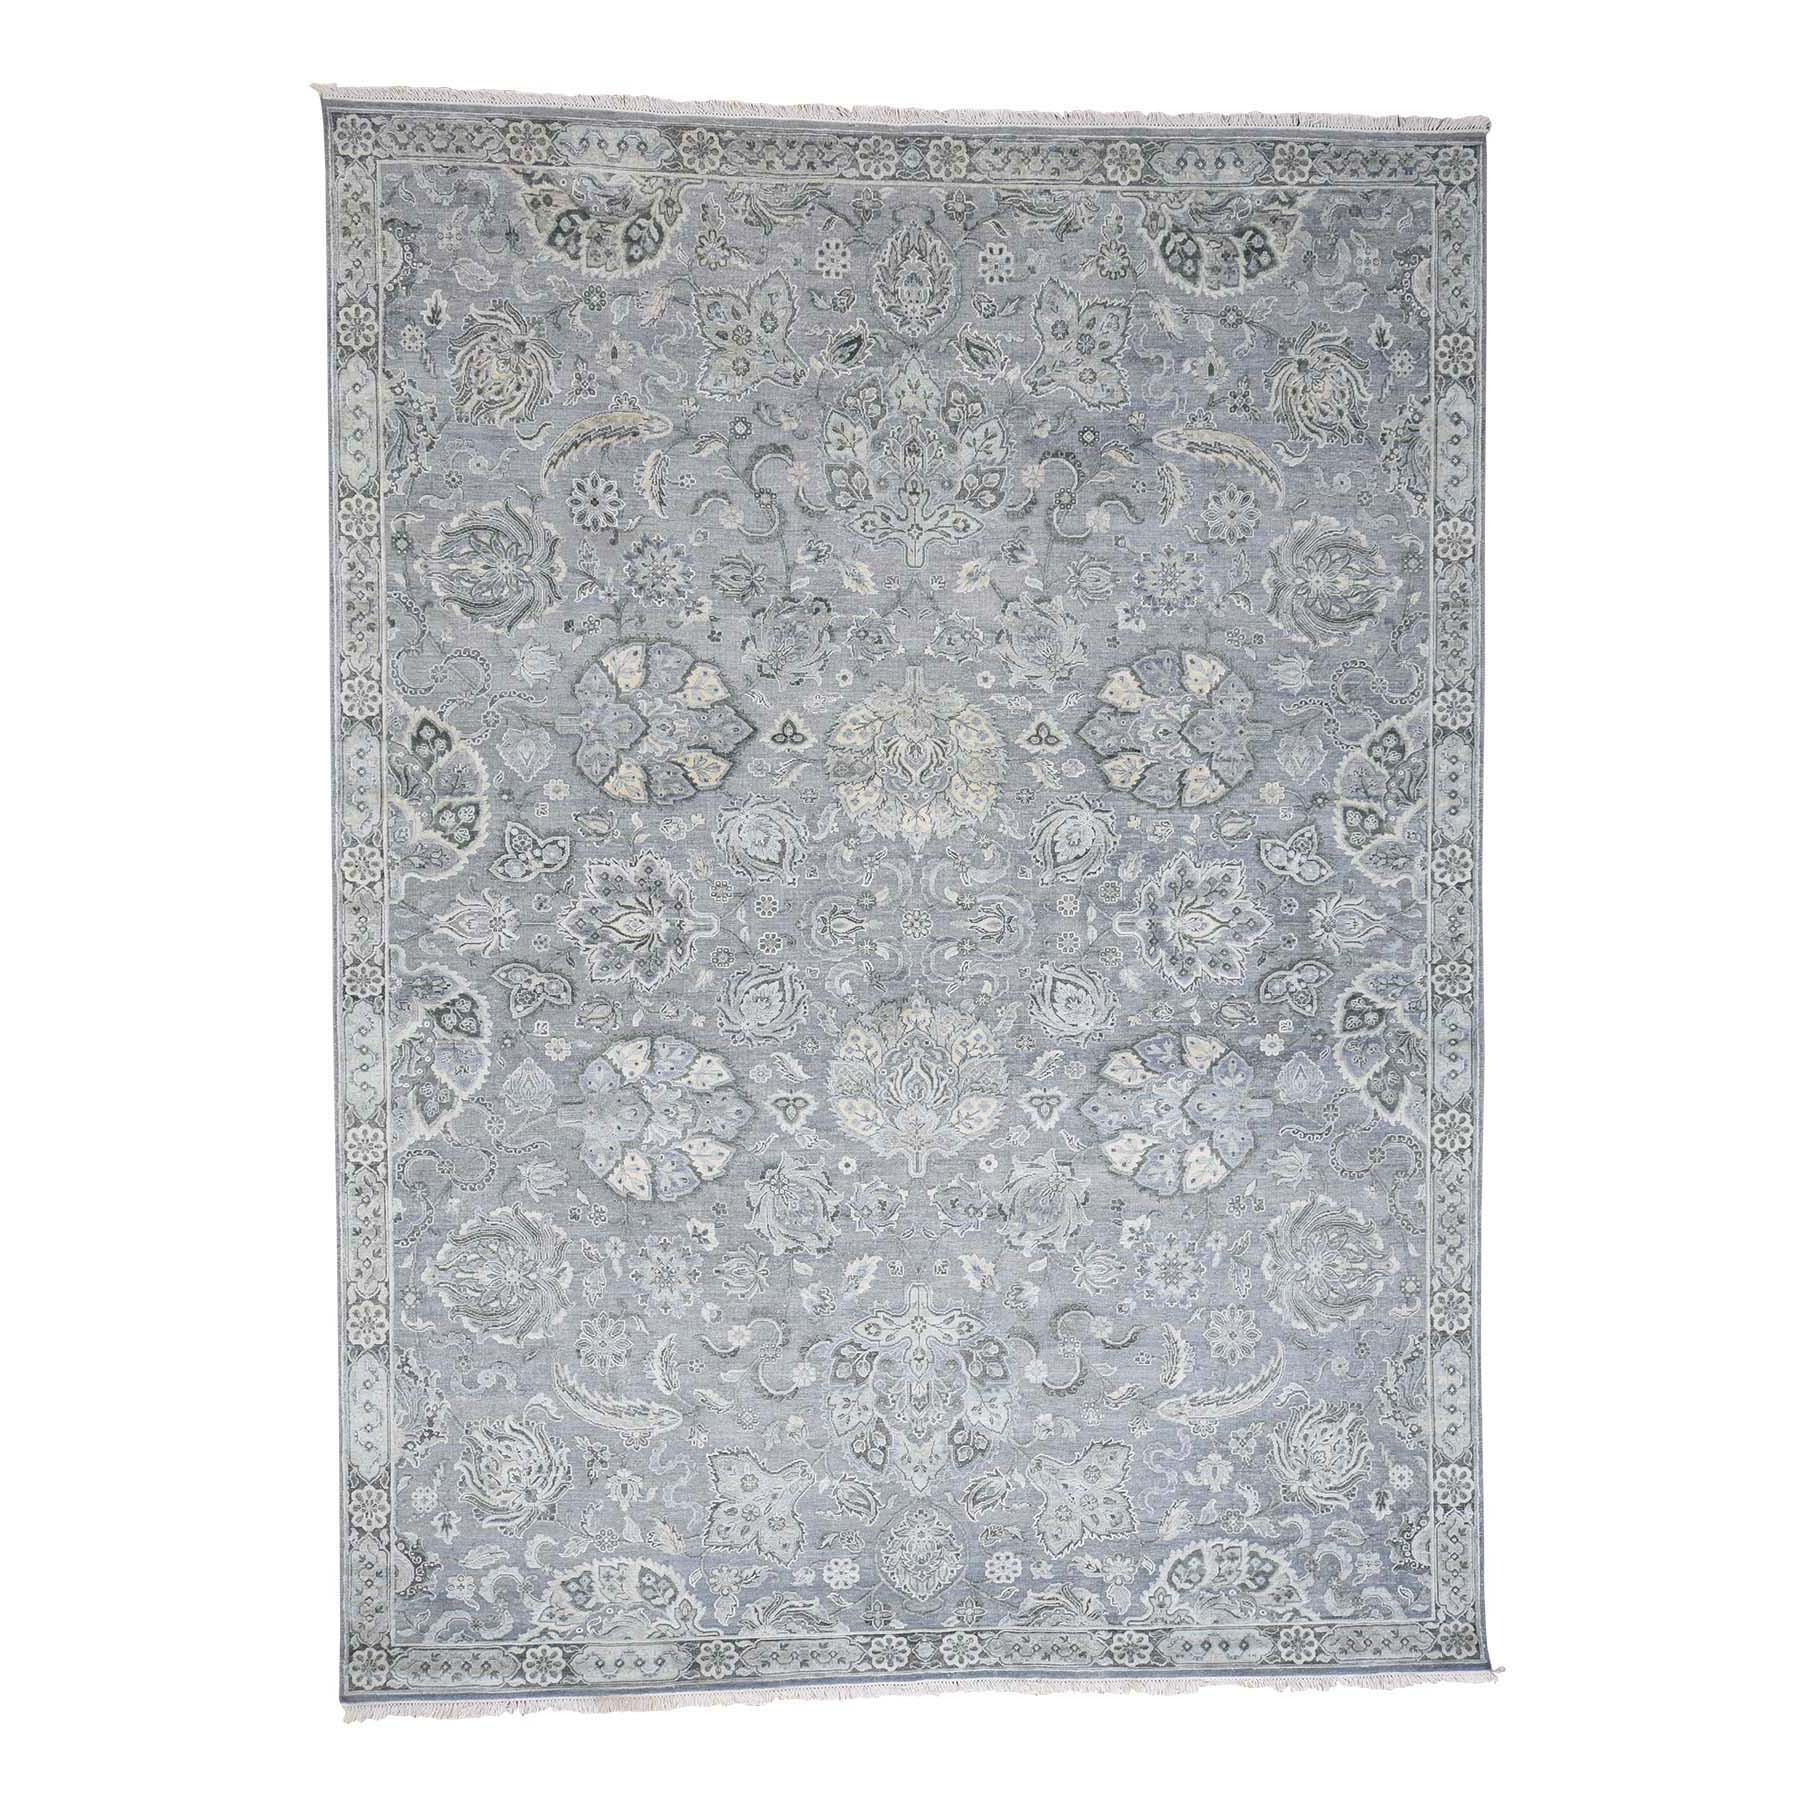 9'X12' Tone On Tone Oushak Silk With Textured Wool Hand-Knotted Oriental Rug moad0edb